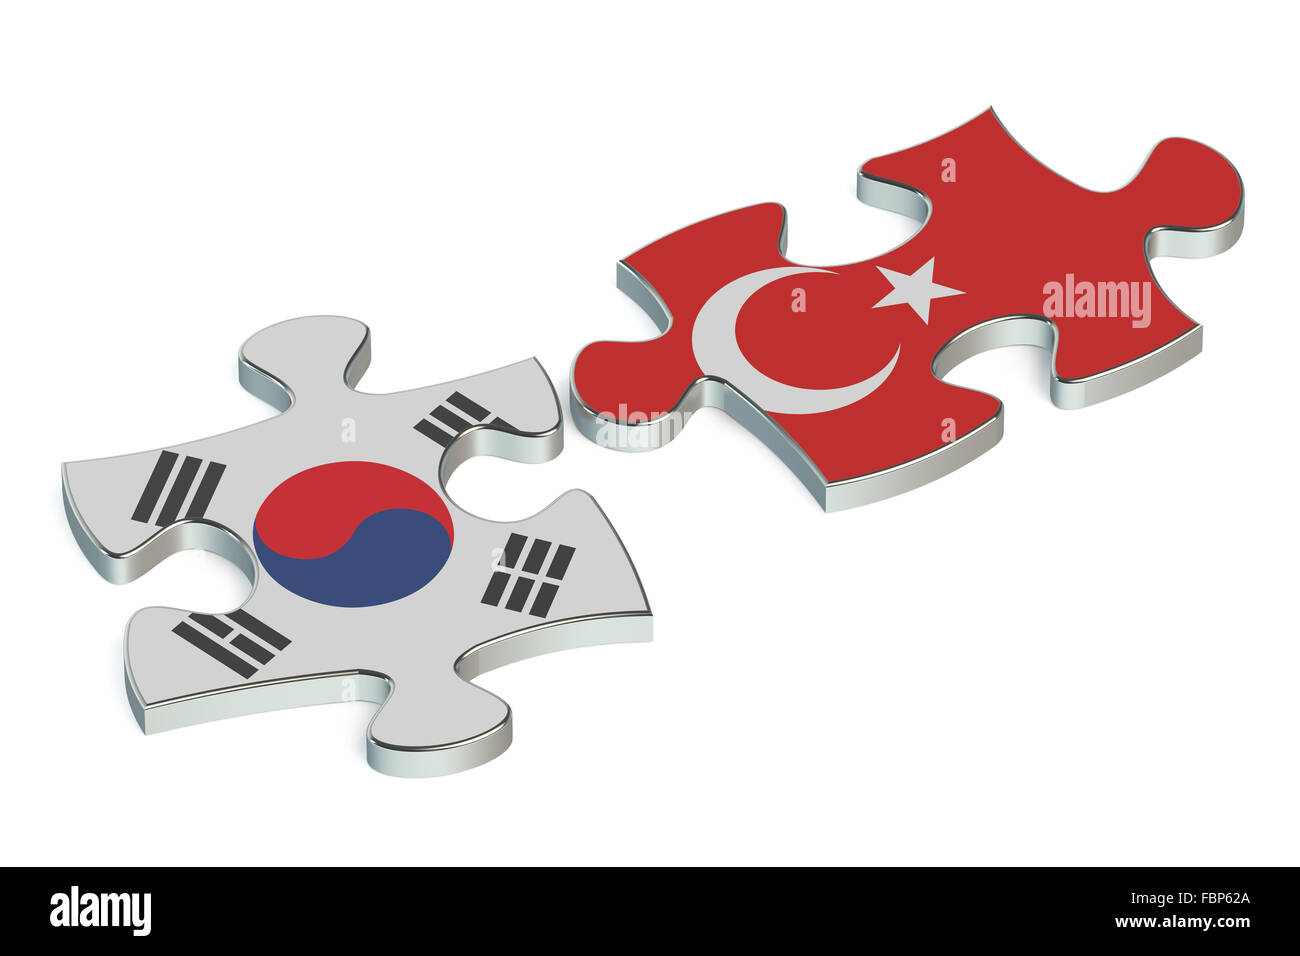 Uncategorized Turkey Puzzles south korea and turkey puzzles from flags stock photo royalty flags